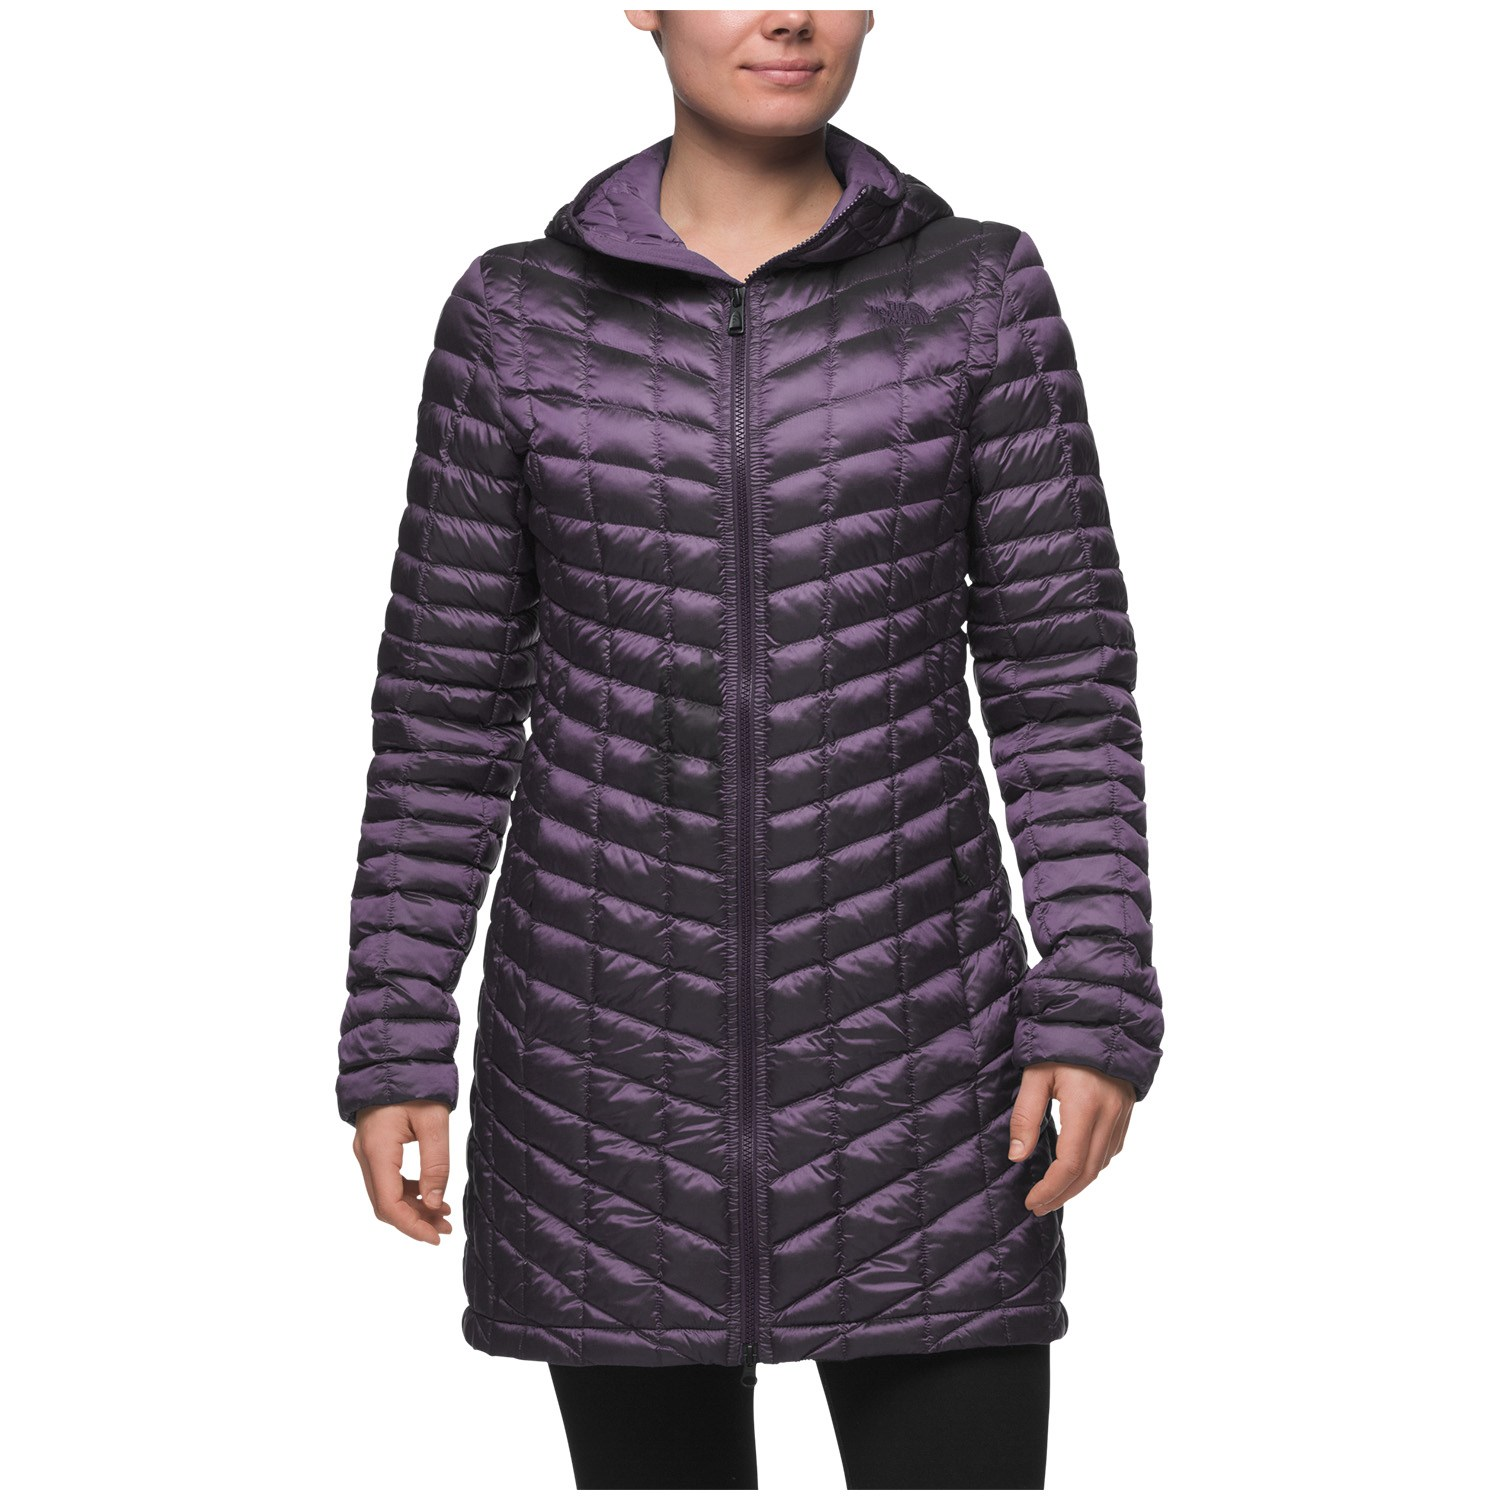 3e9986b12 The North Face Thermoball™ Parka II Jacket - Women's